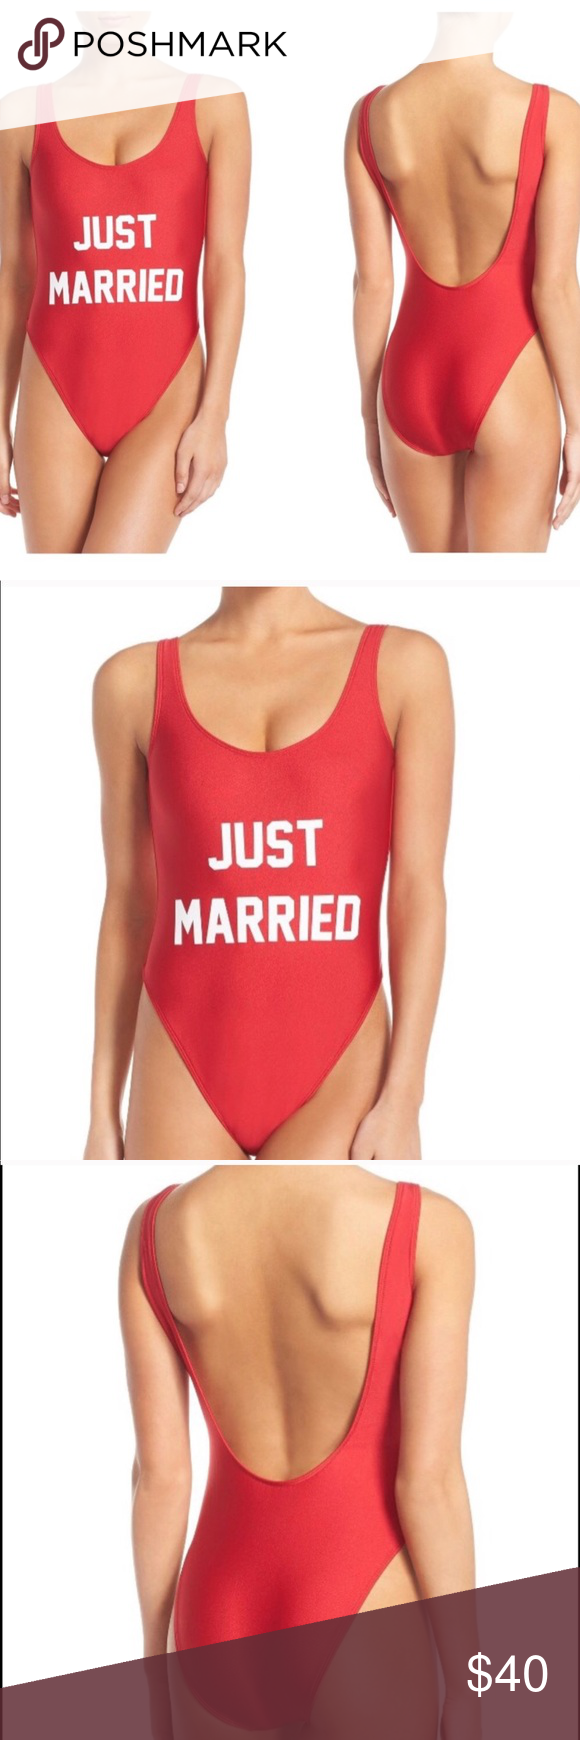 9533e3186f Private Party  Just Married  One-Piece Swimsuit Size M L 100% Authentic  Sold Out Style New w  Partial Tags....A retro-inspired swimsuit sits high  above your ...